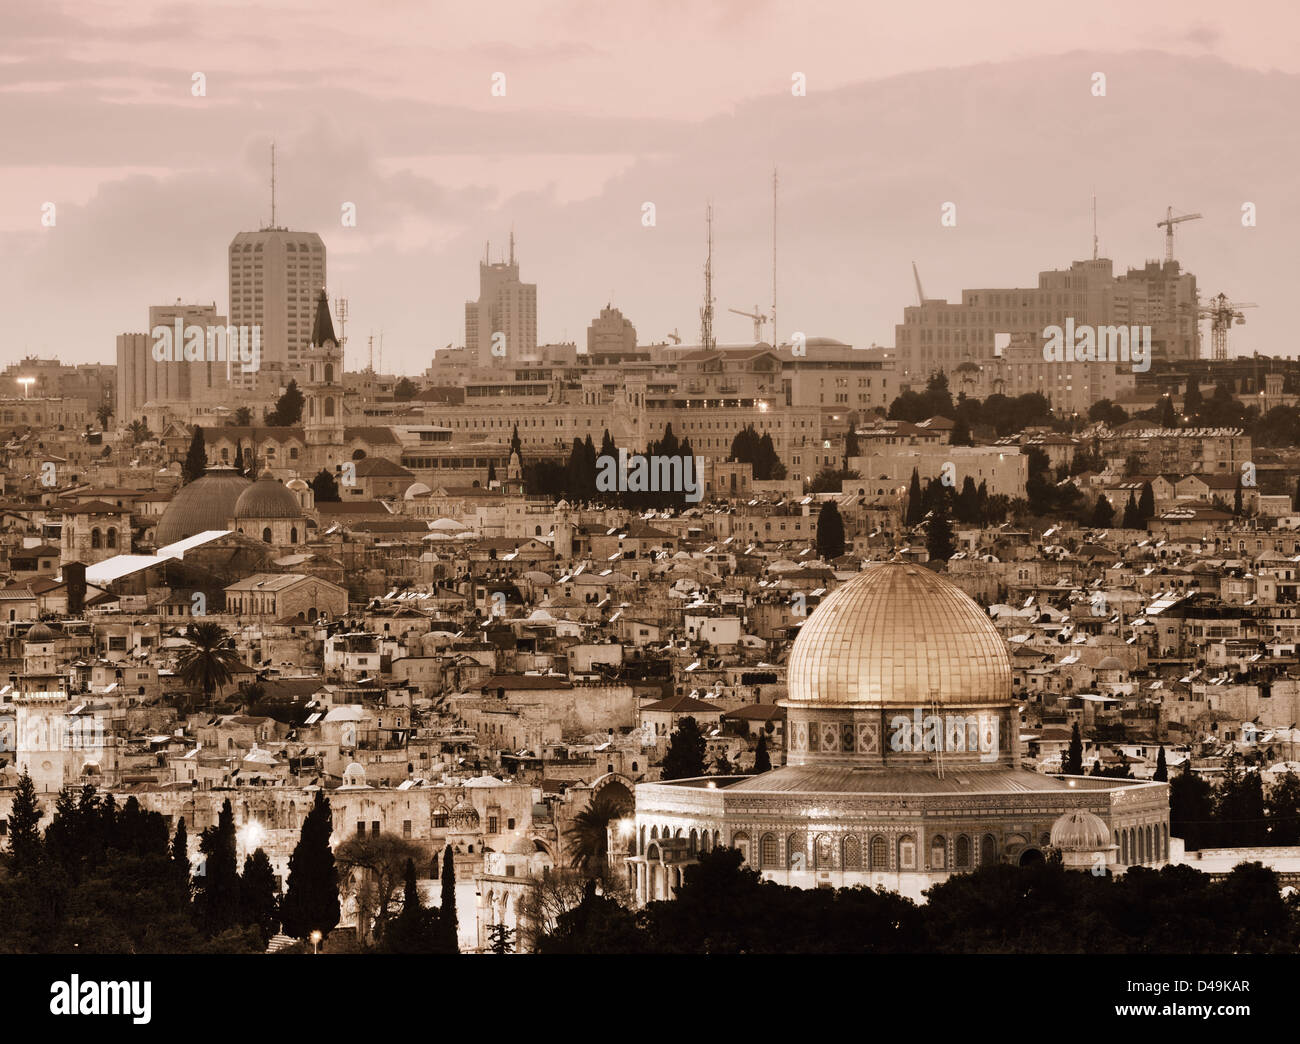 Old and New City of Jerusalem, Israel. - Stock Image